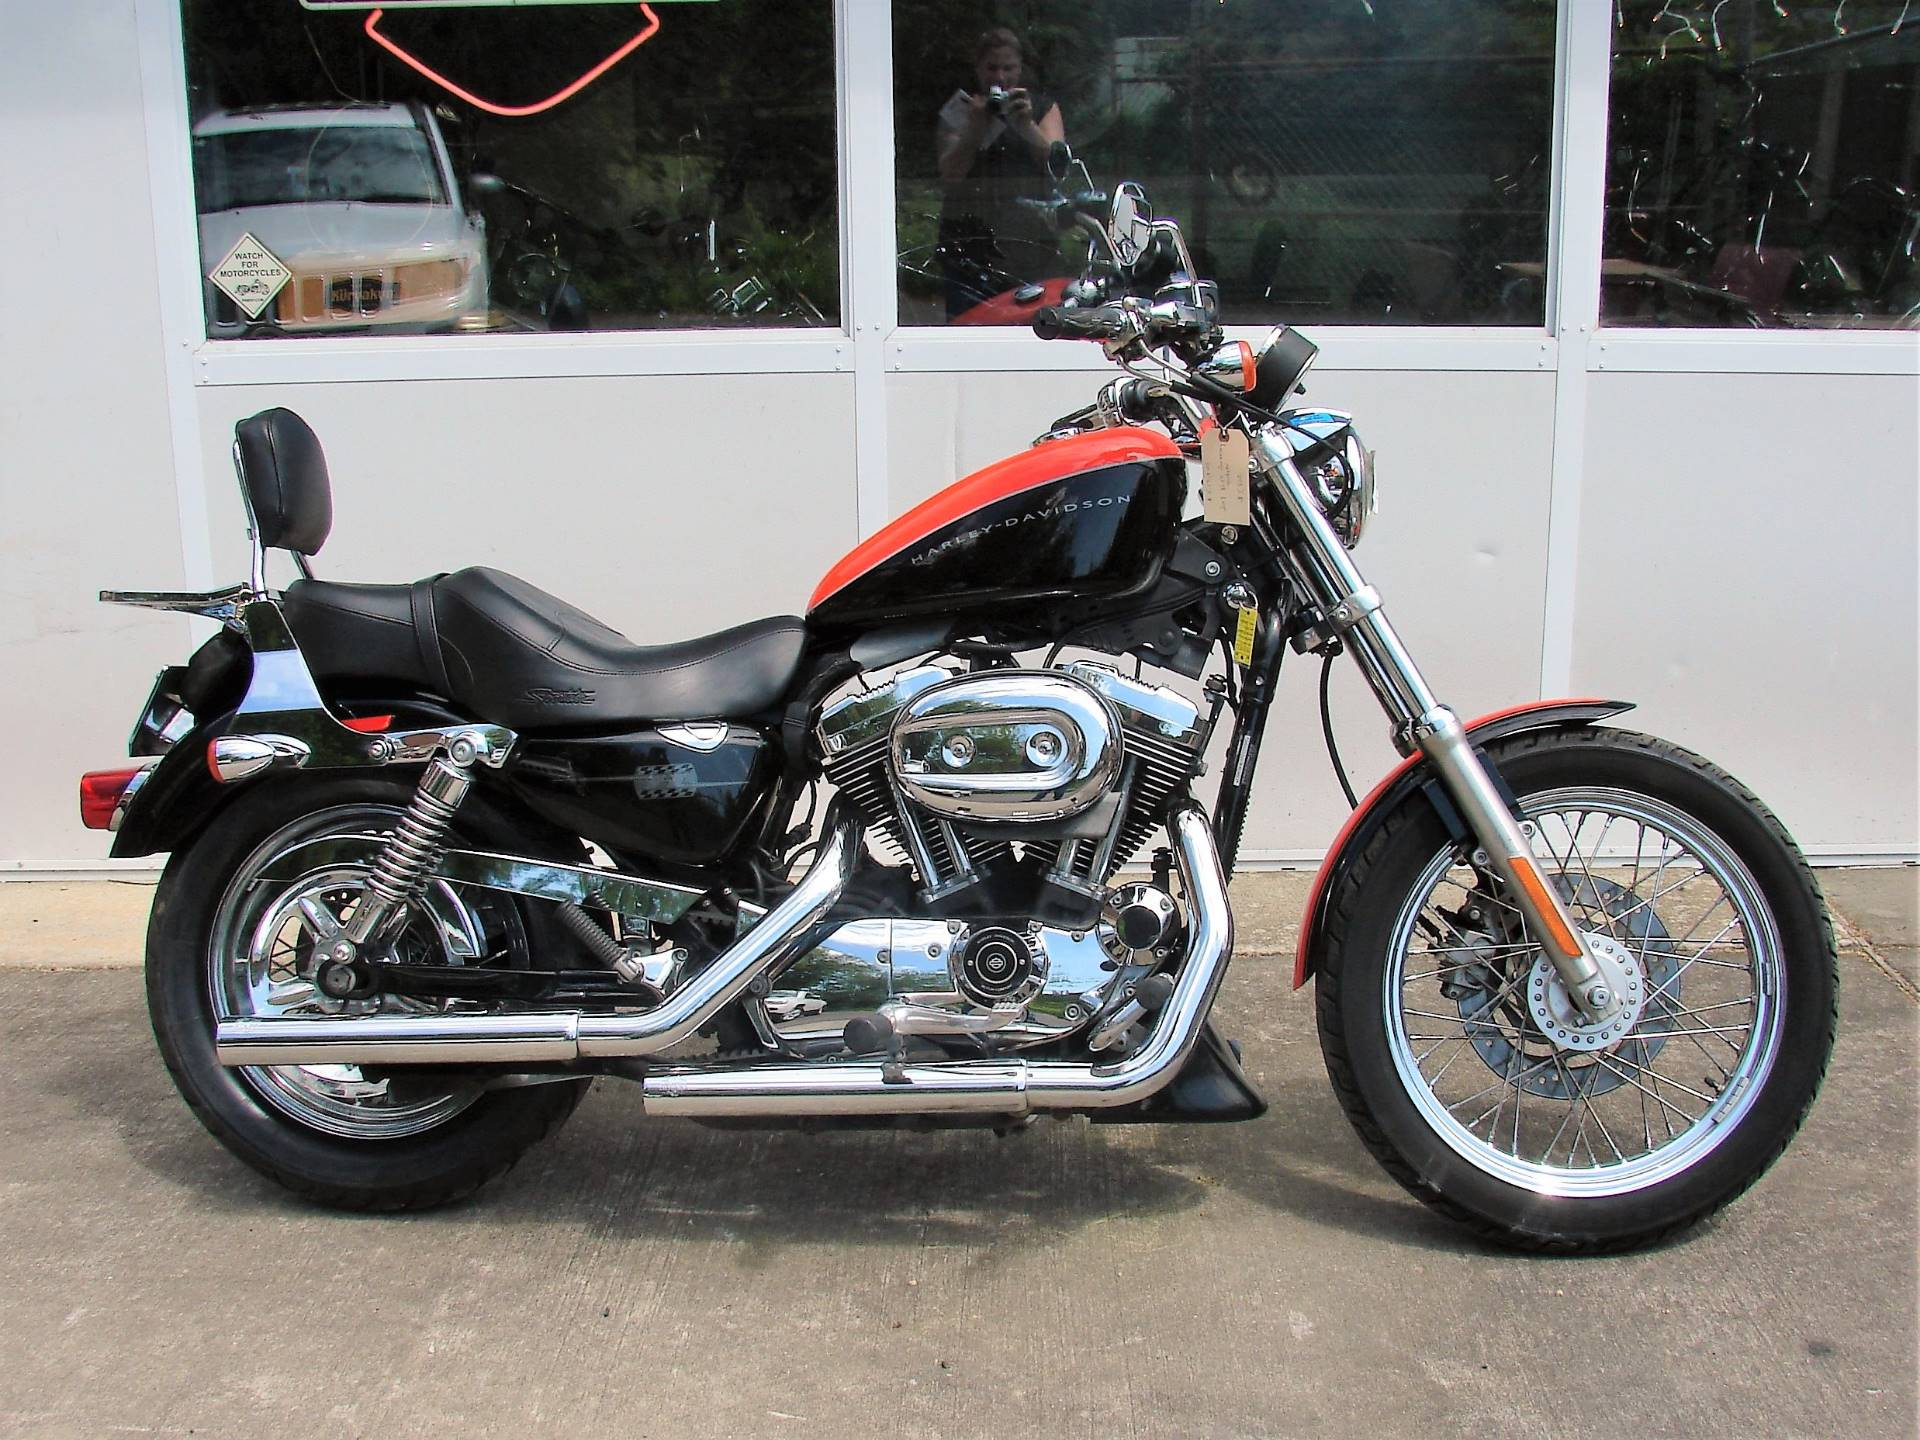 2007 Harley-Davidson 1200 Sportster XL 50  (50th Anniversary Edition) in Williamstown, New Jersey - Photo 11